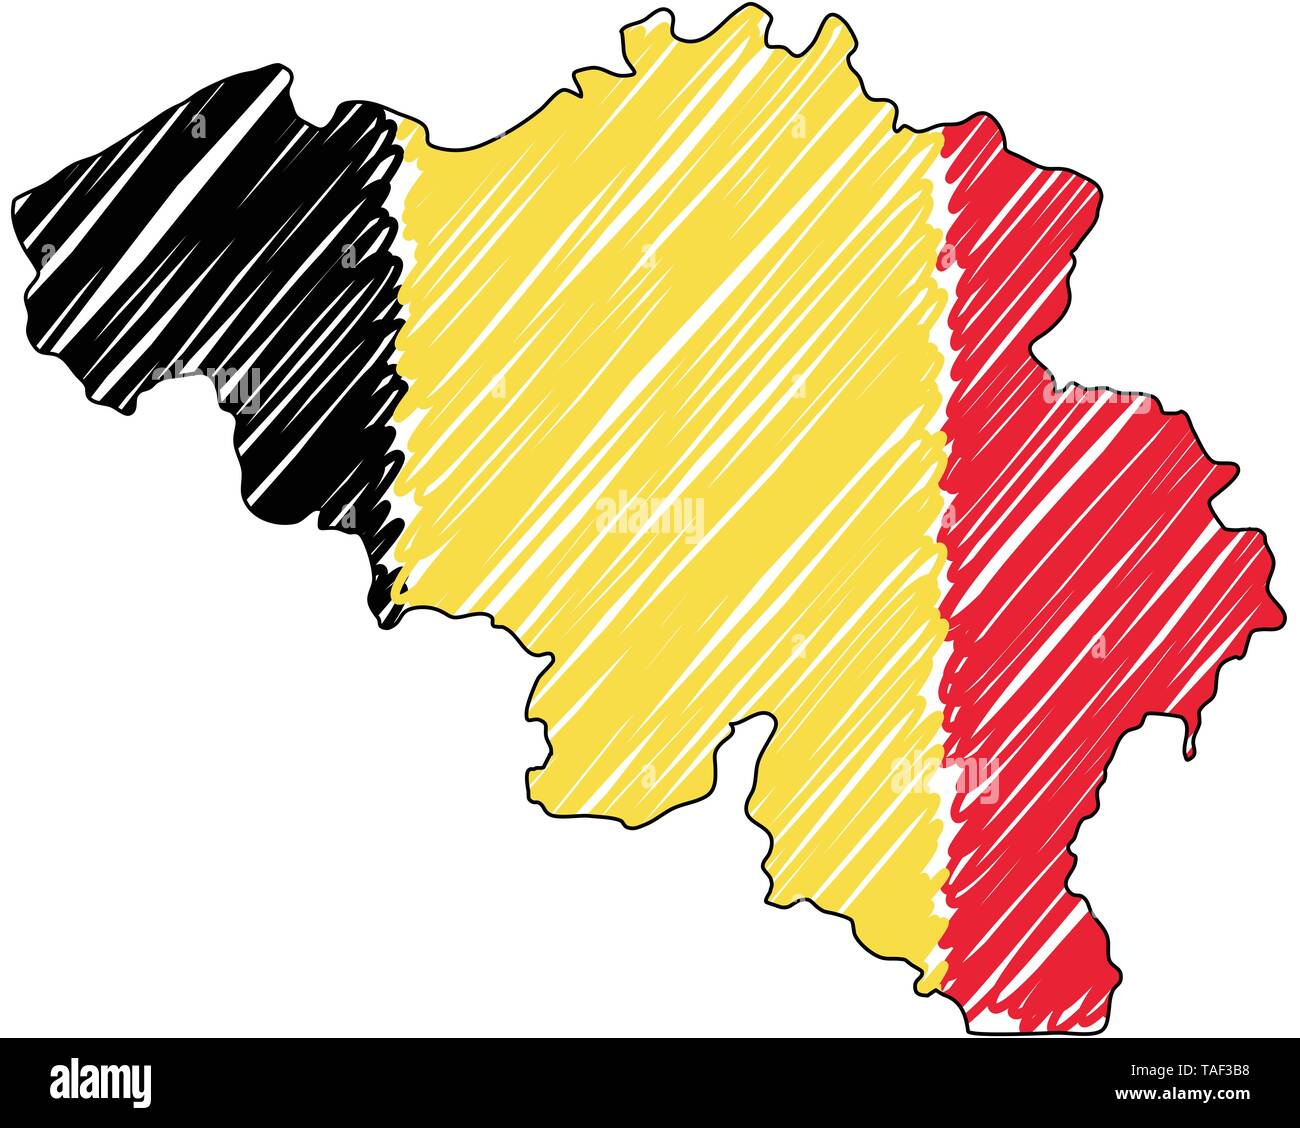 Belgium map hand drawn sketch. Vector concept illustration flag, childrens drawing, scribble map. Country map for infographic, brochures and presentat - Stock Image